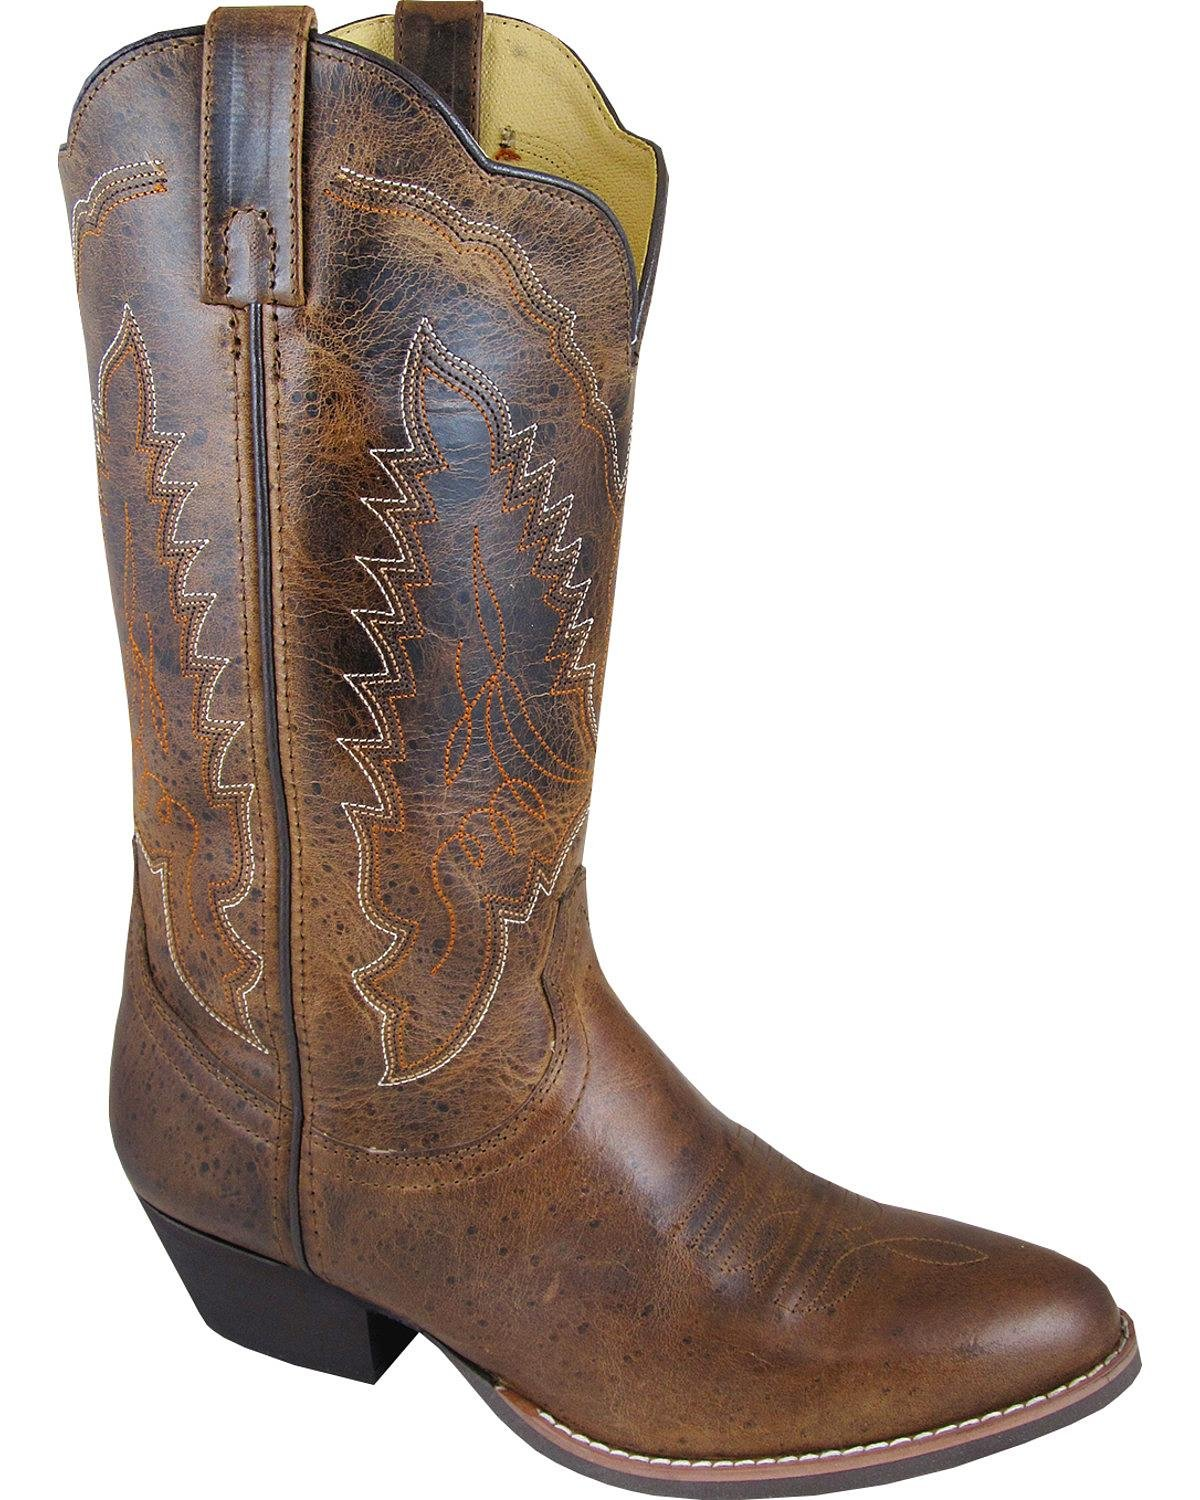 Smoky Mountain Boots Womens Amelia Brown Distress Leather 12in Western 7.5 M